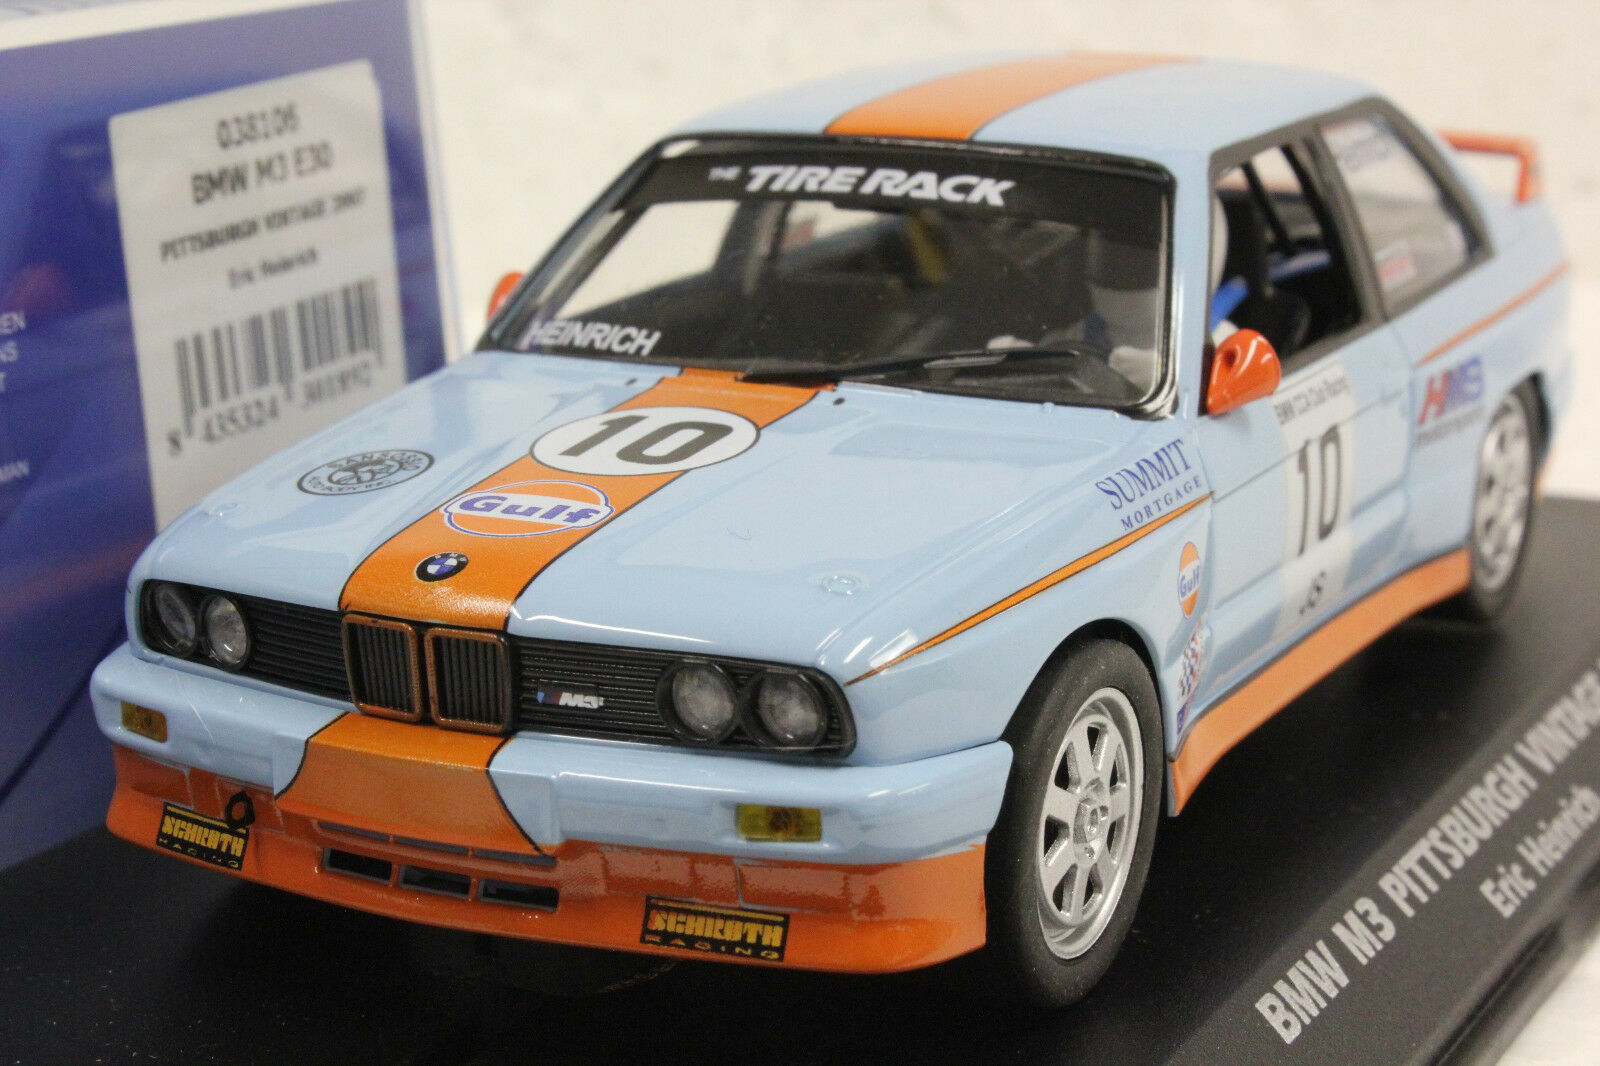 Fly 038106 Gulf BMW M3 E30 Pittsburgh Vintage 2007 New Slot car 1 32 Slot Car